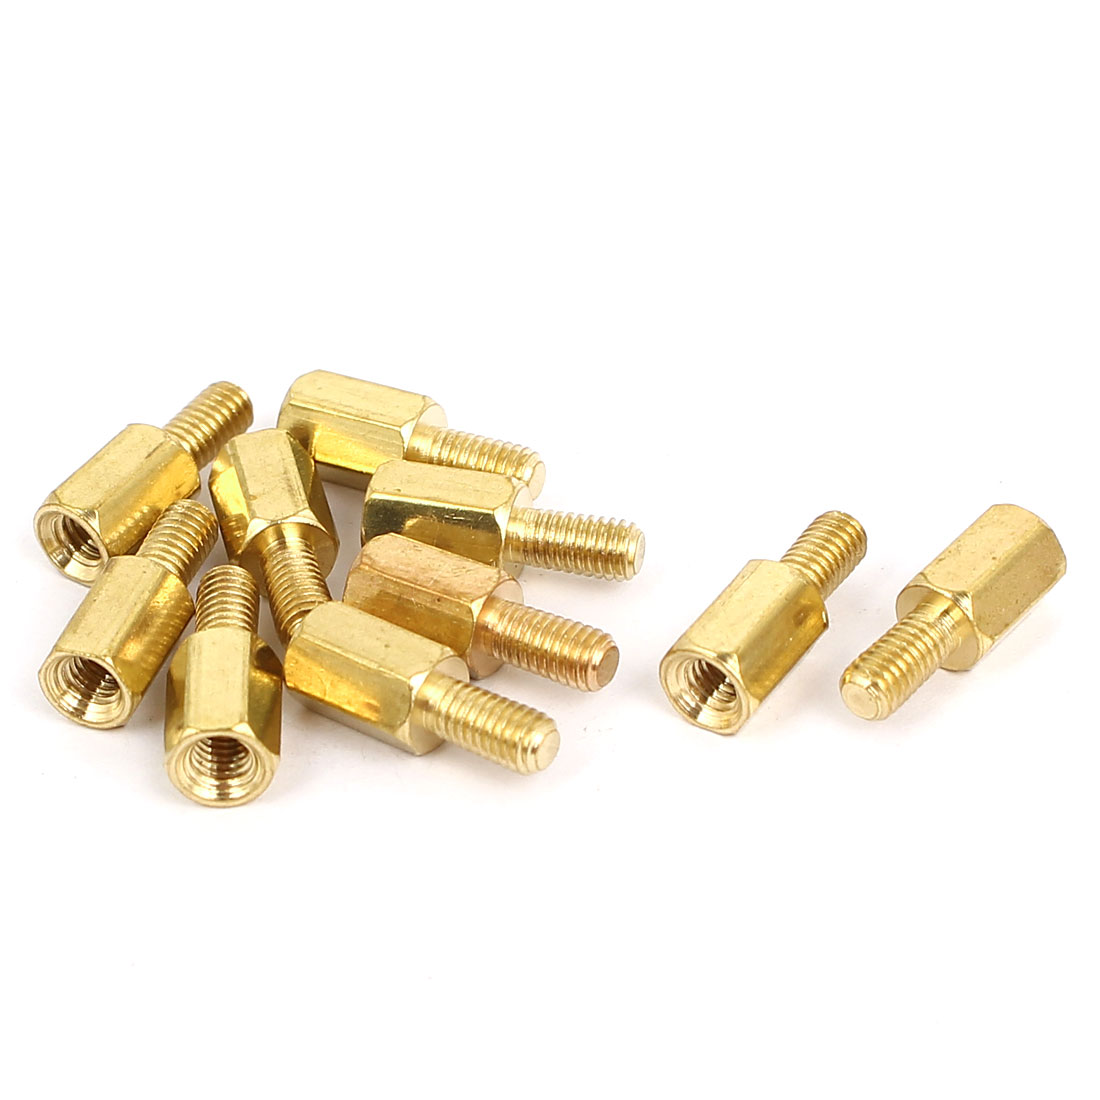 M3 Male to Female Thread Brass Hexagonal PCB Spacer Standoff Support 7mm+6mm 10pcs